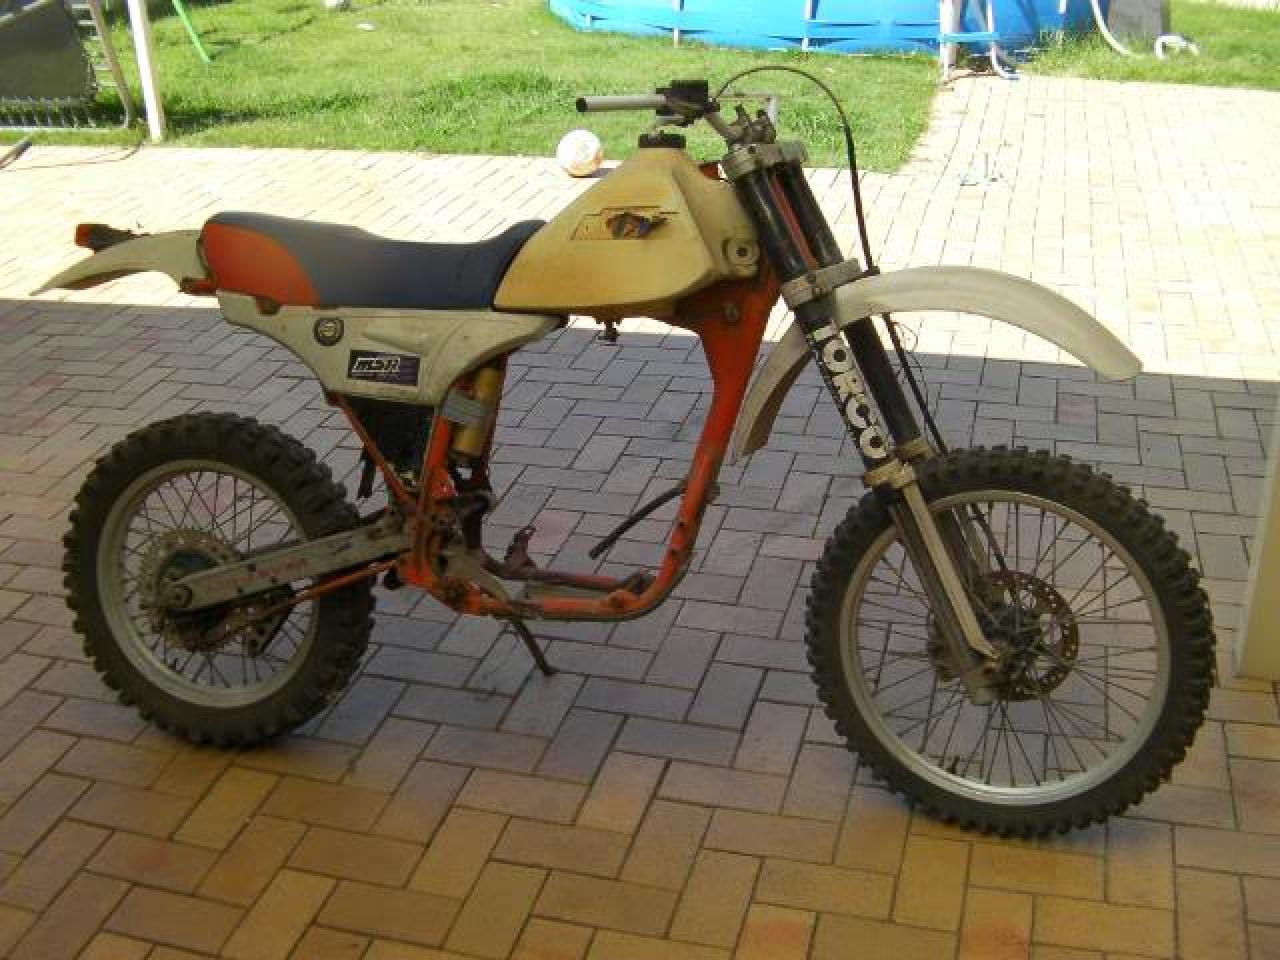 Maico MD 125/6 images #101850